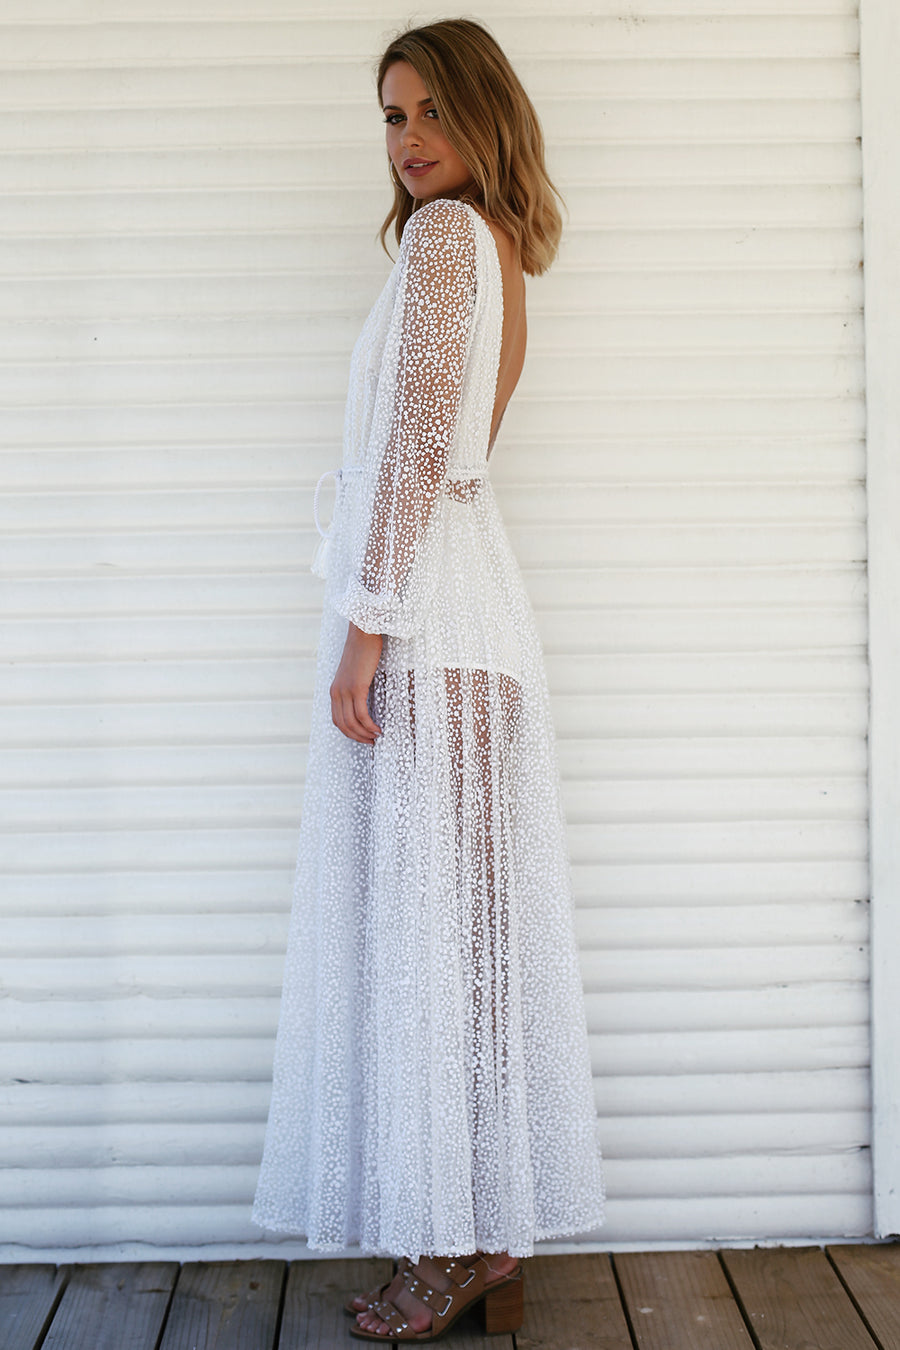 Nala Glitter Gown in White for $149.00